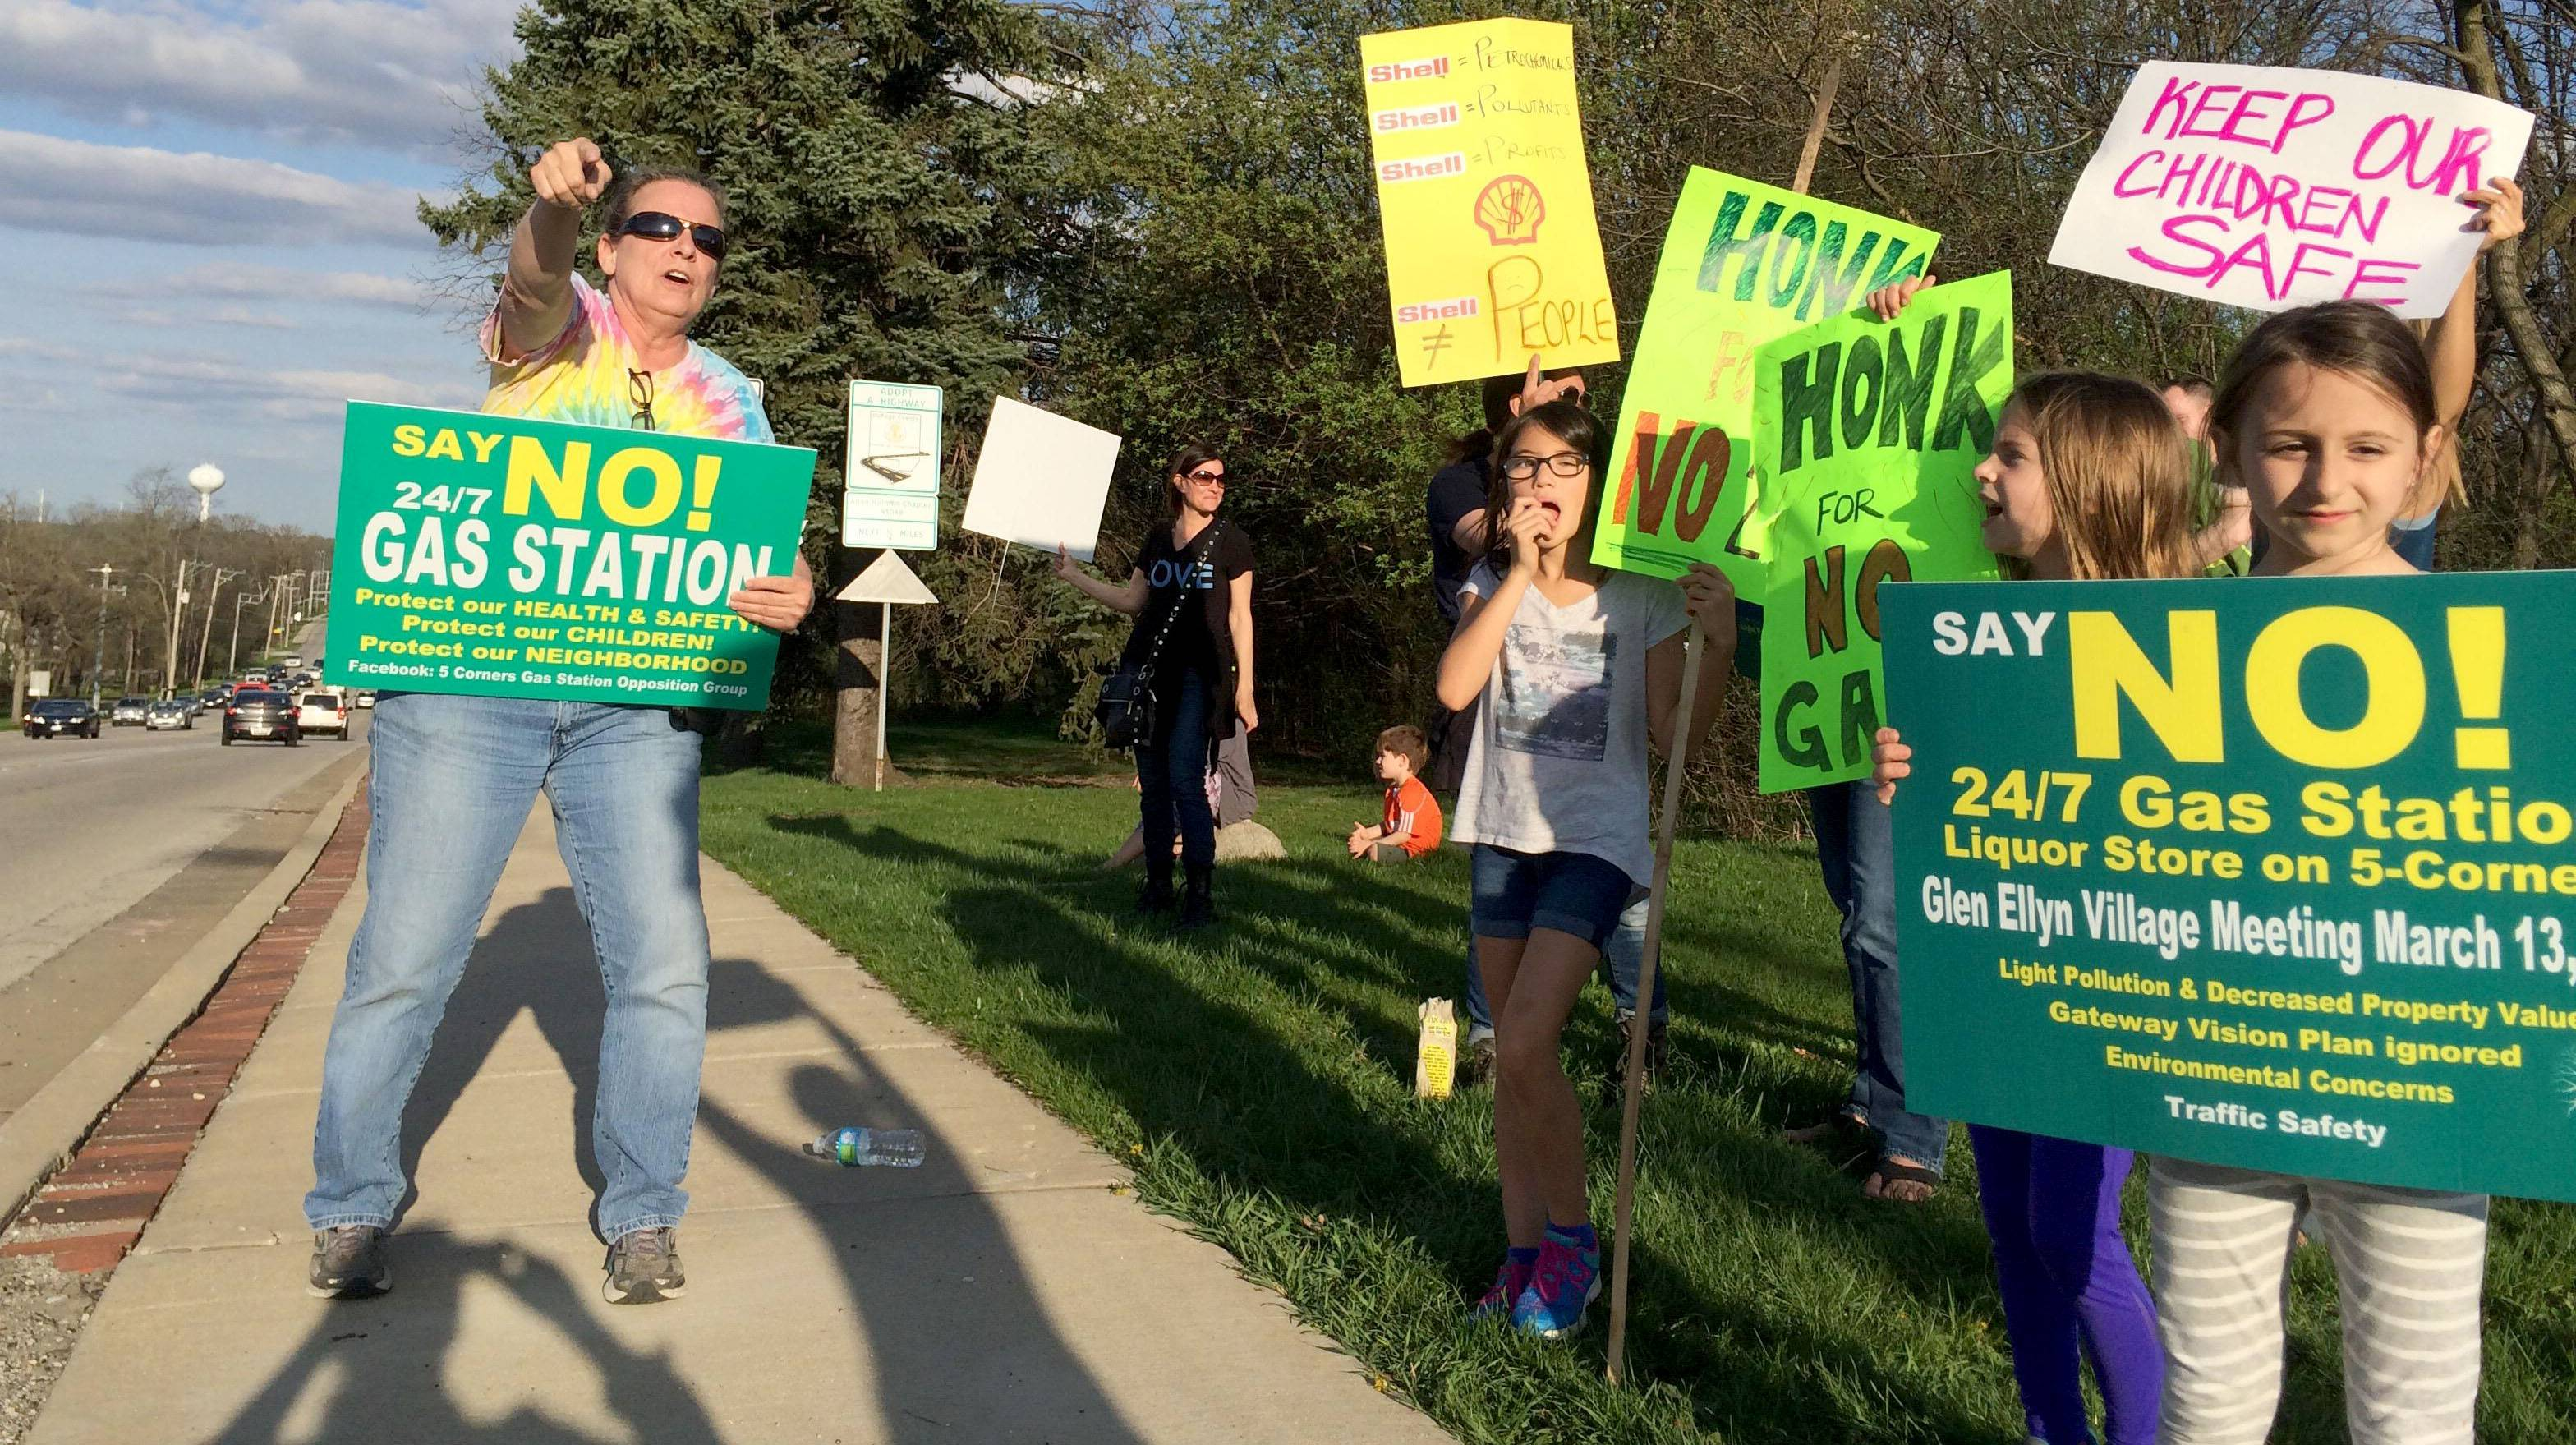 Mary Beth Nelms, left, joined a protest against plans for a gas station at the southeast corner of Main Street and St. Charles Road in Glen Ellyn.